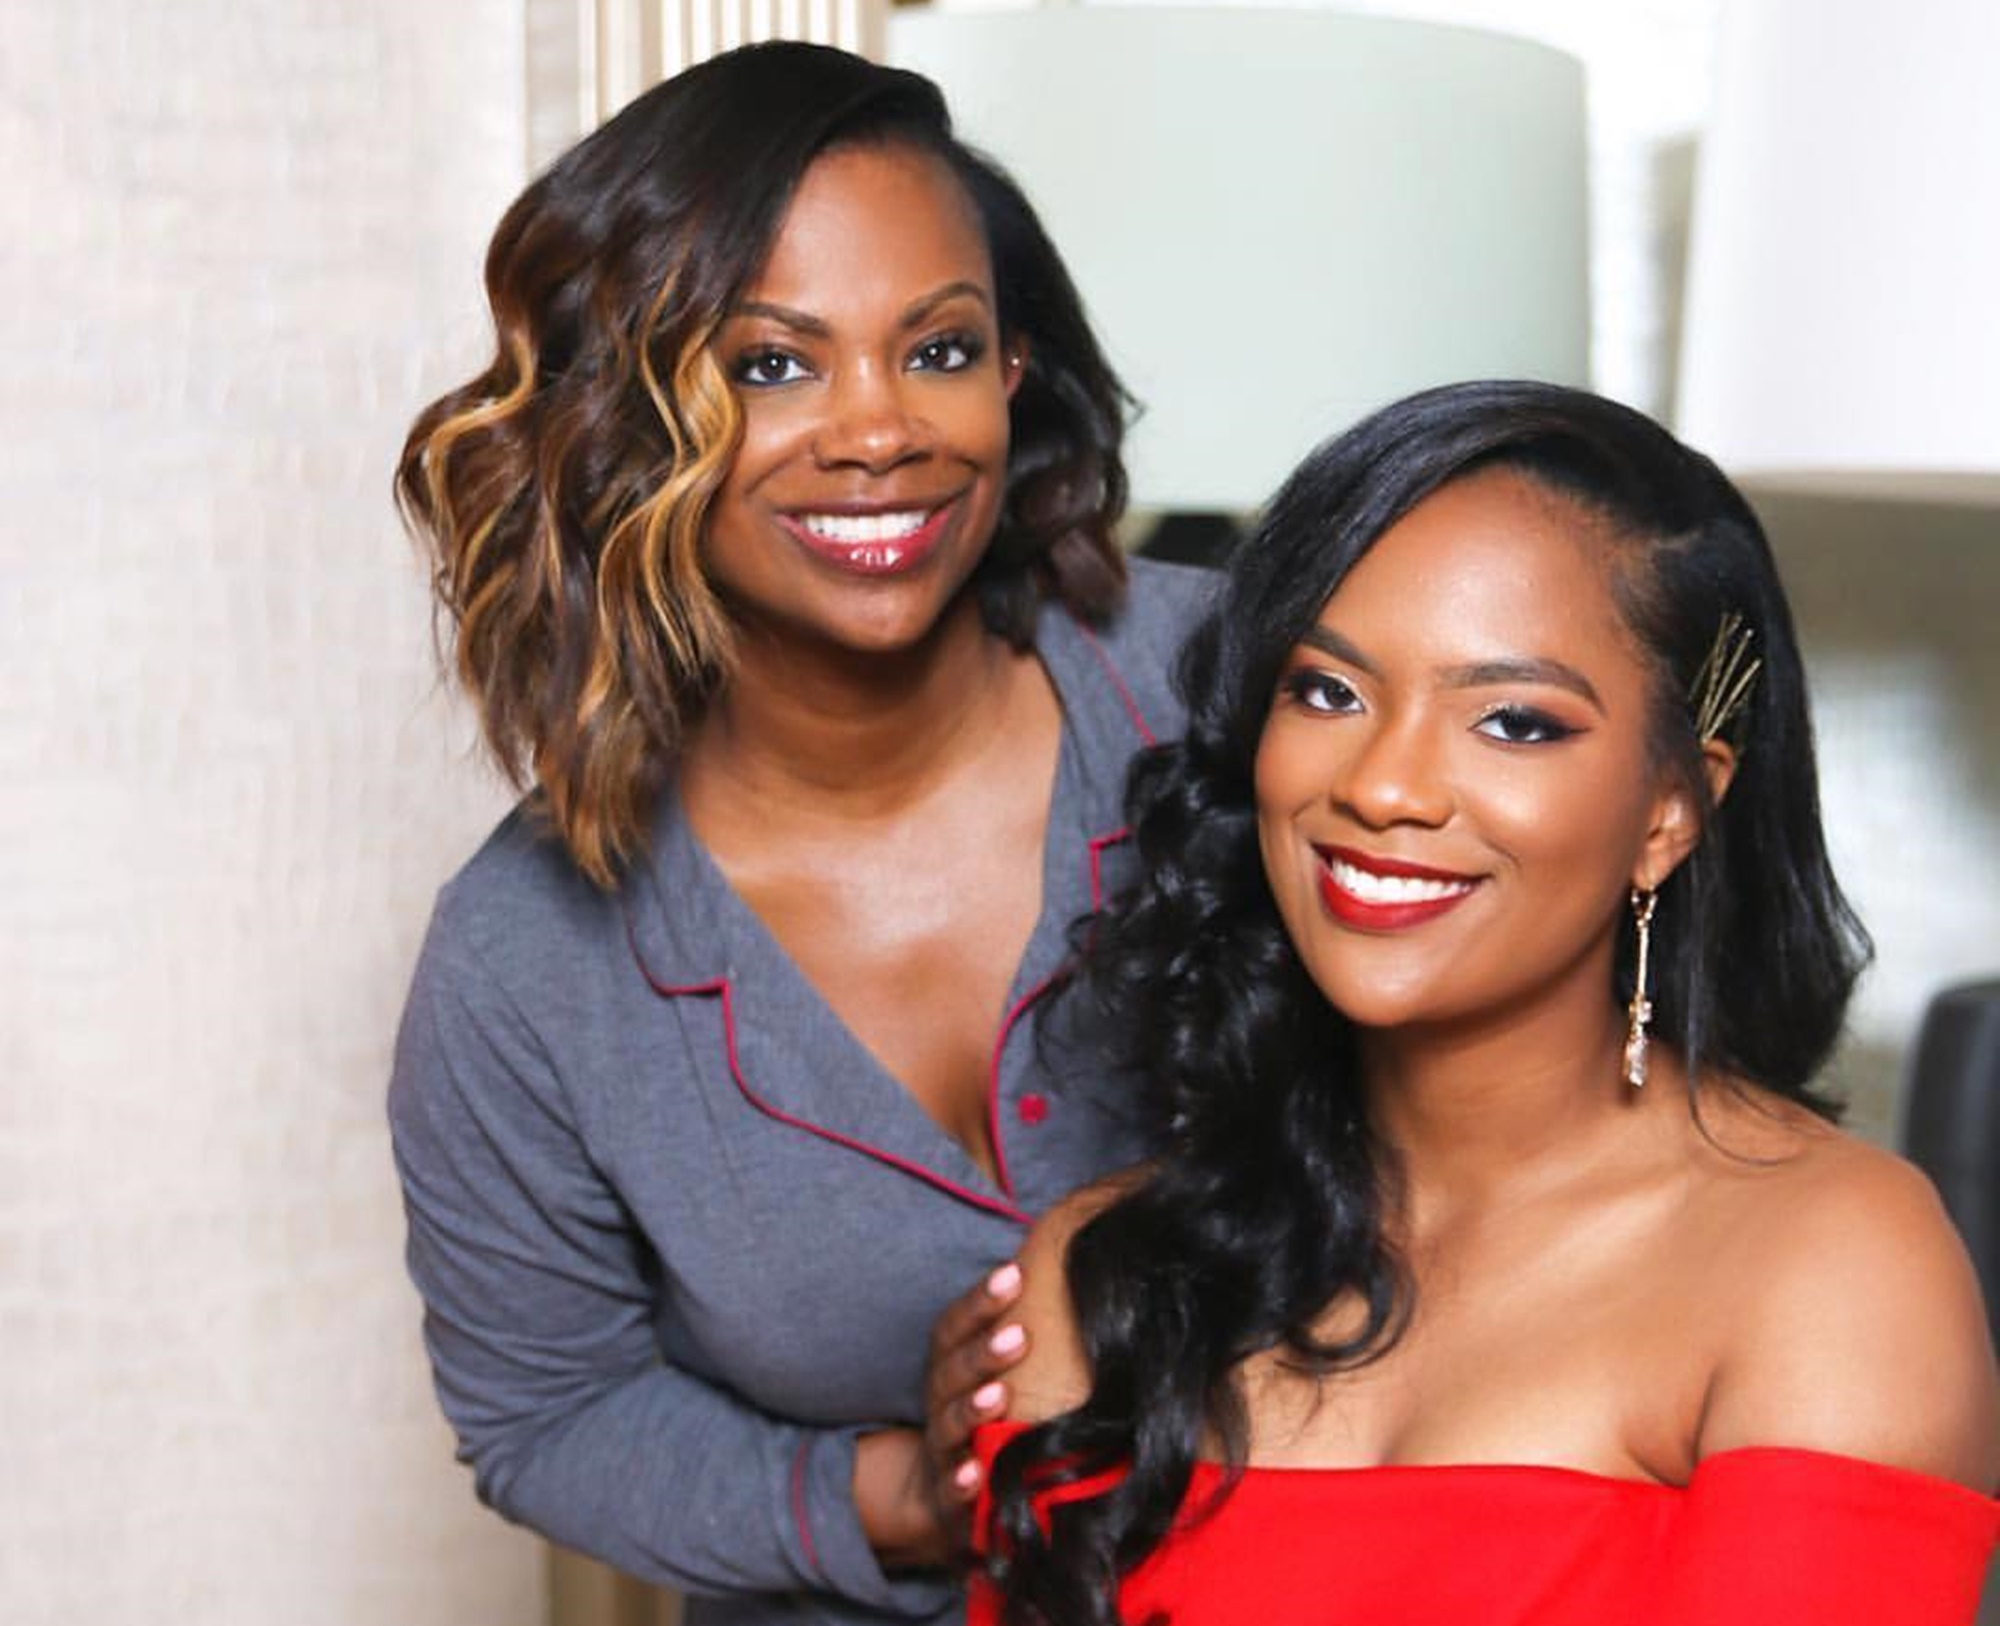 """kandi-burruss-posts-gorgeous-video-of-rileys-prom-dress-fans-say-this-how-rich-people-do-it"""